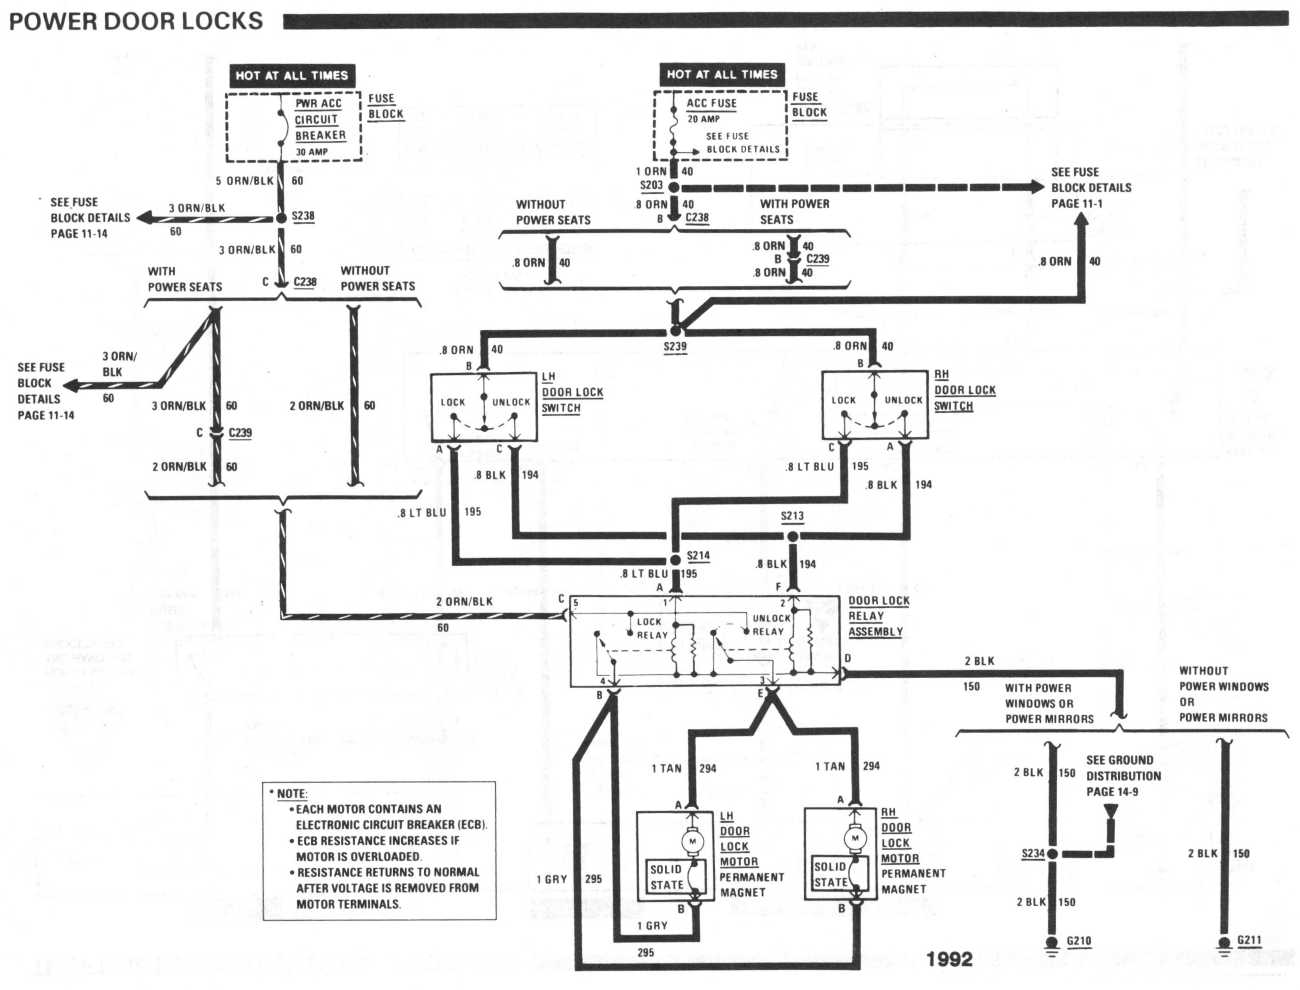 ram door lock wire diagram dodge ram power door lock wiring diagram ...